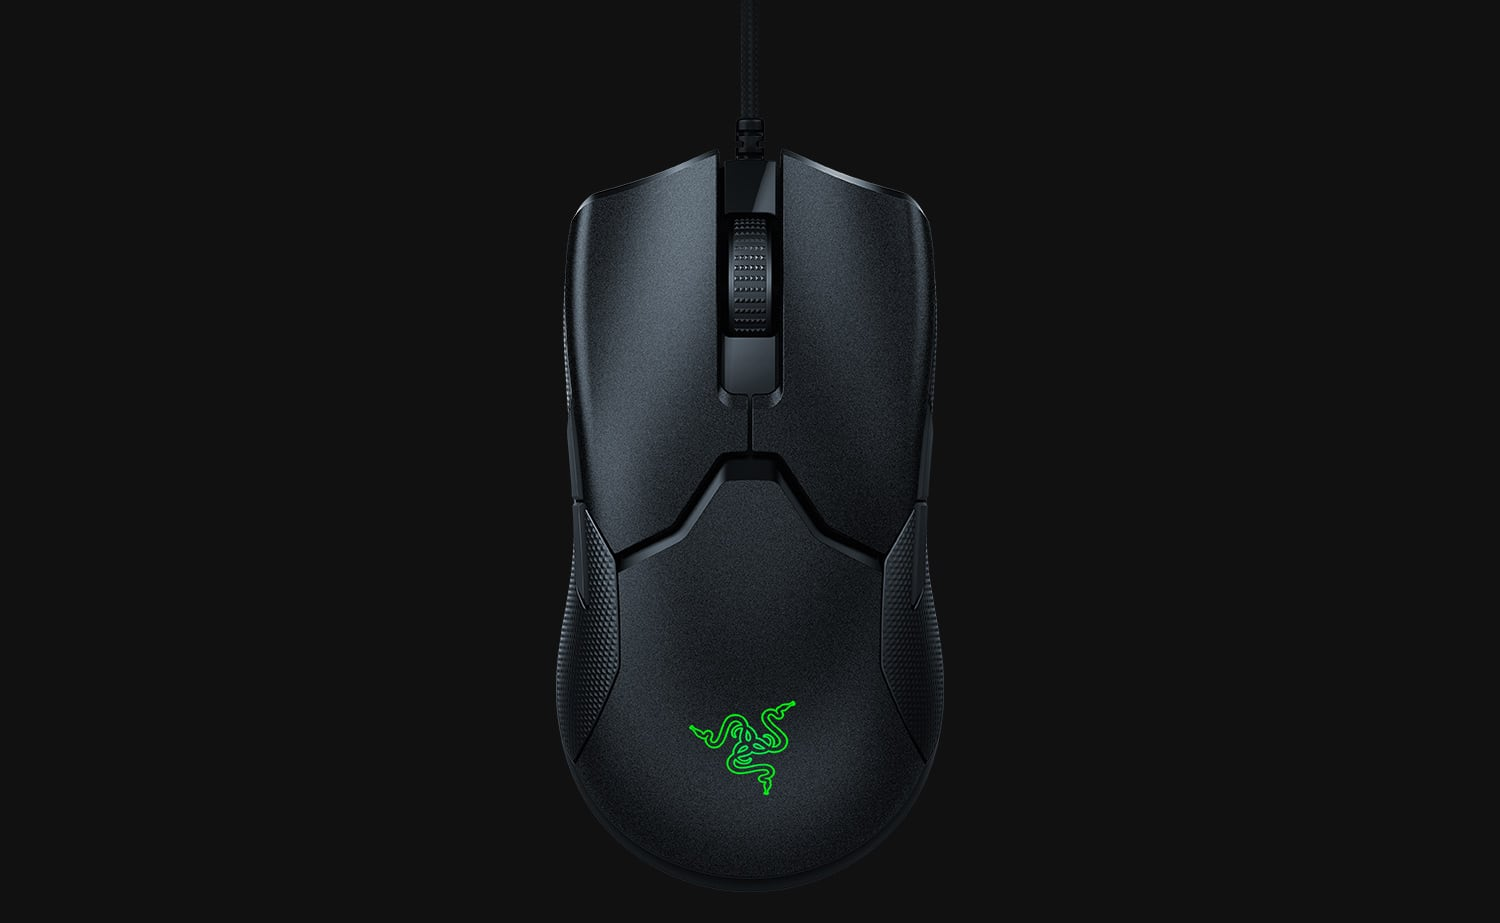 Razer Viper Ambidextrous Gaming Mouse ensures you're accurate in battle